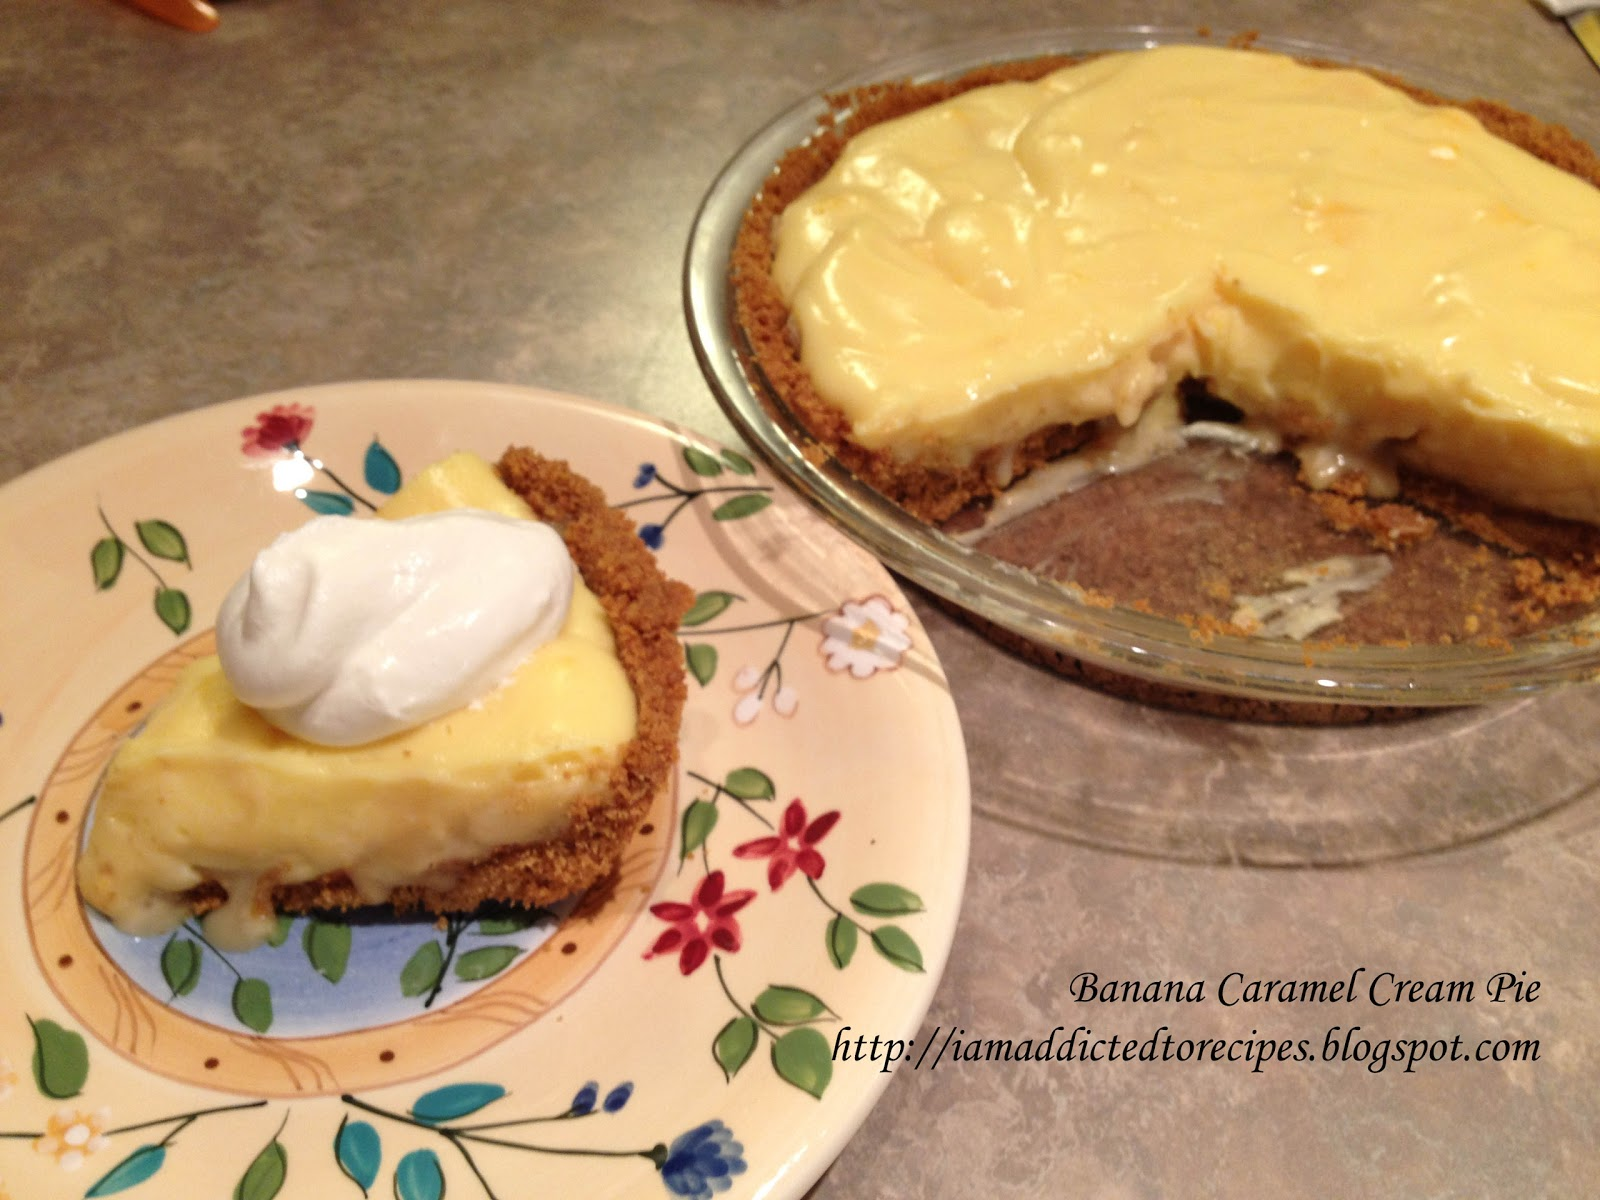 Addicted to Recipes: Banana Caramel Cream Pie